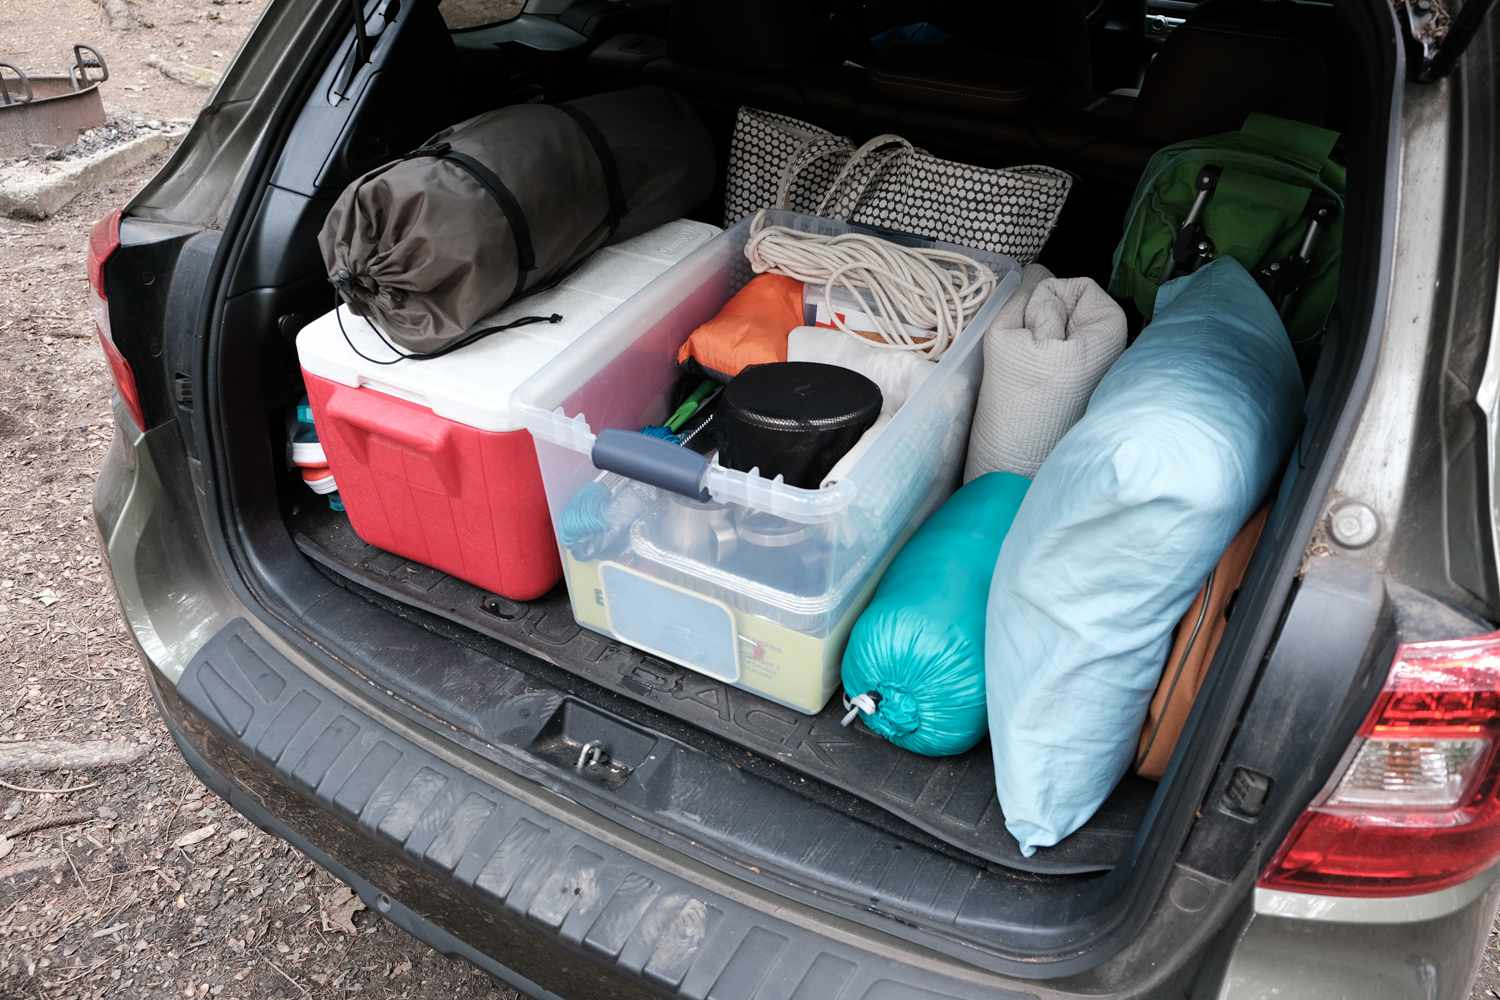 camping gear and coolers are neatly stacked into back of car